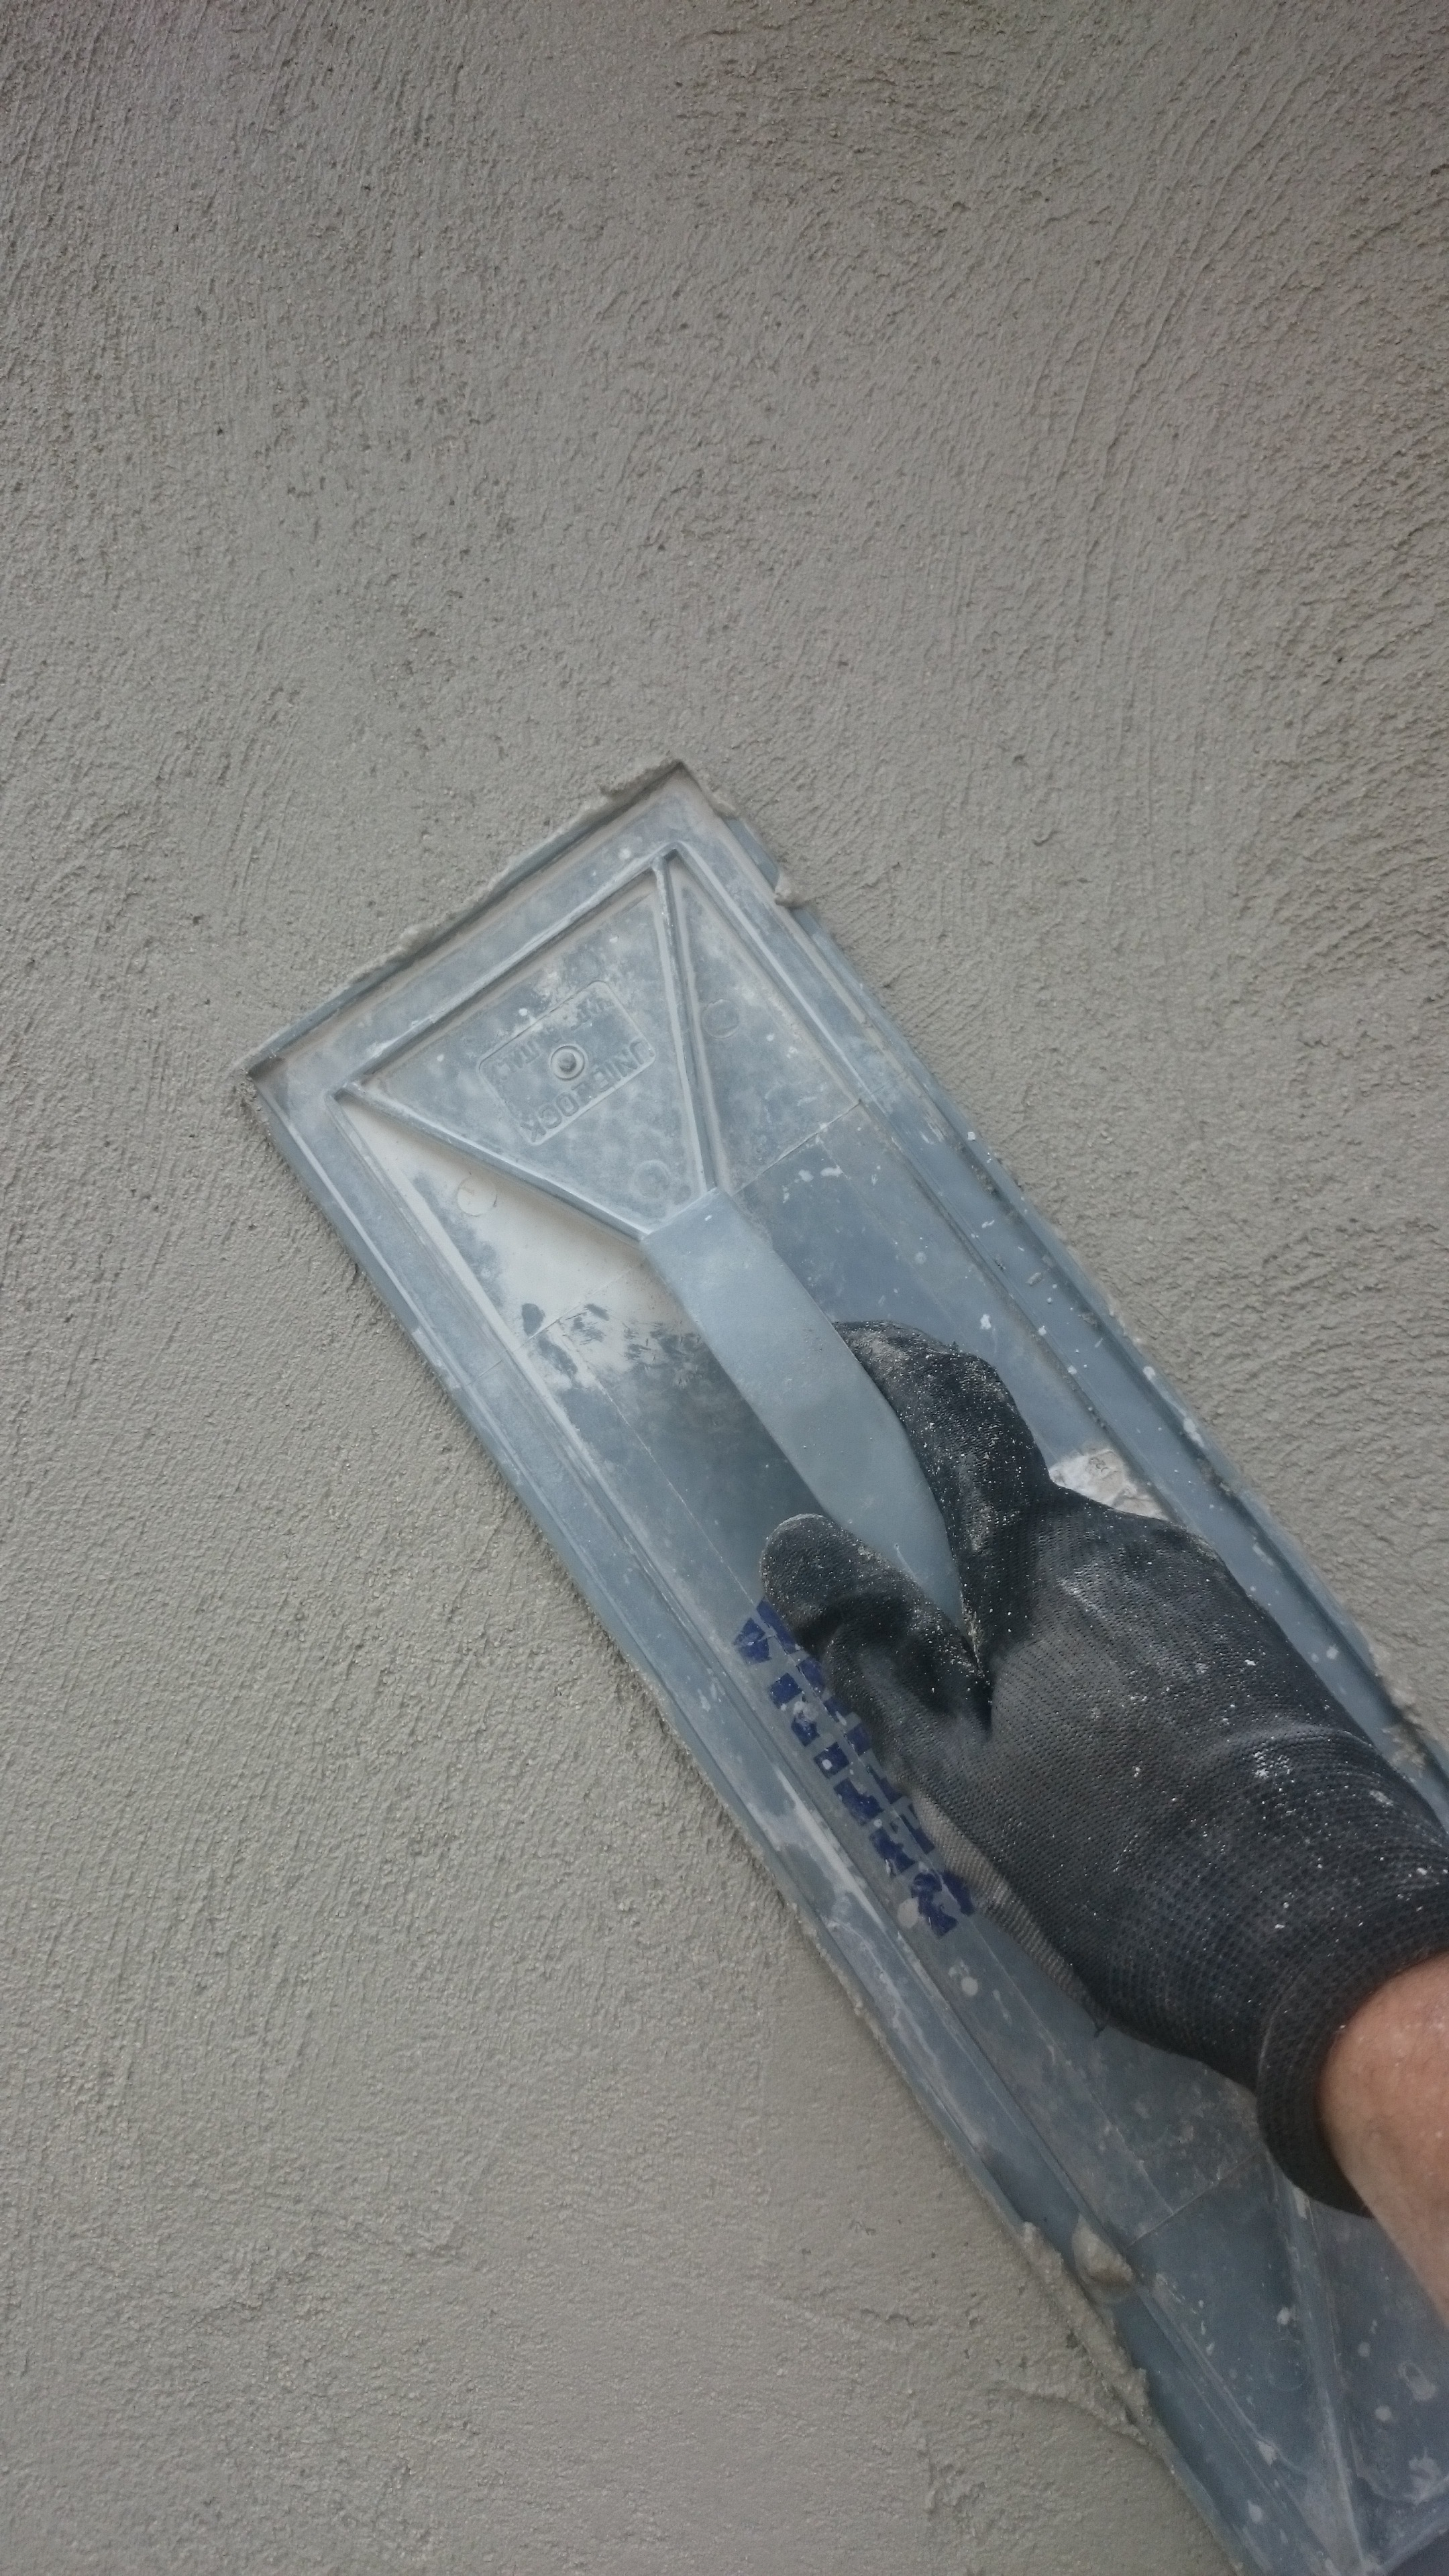 K Rend GP Mortar Installation Tips for a Top Finish - PFT